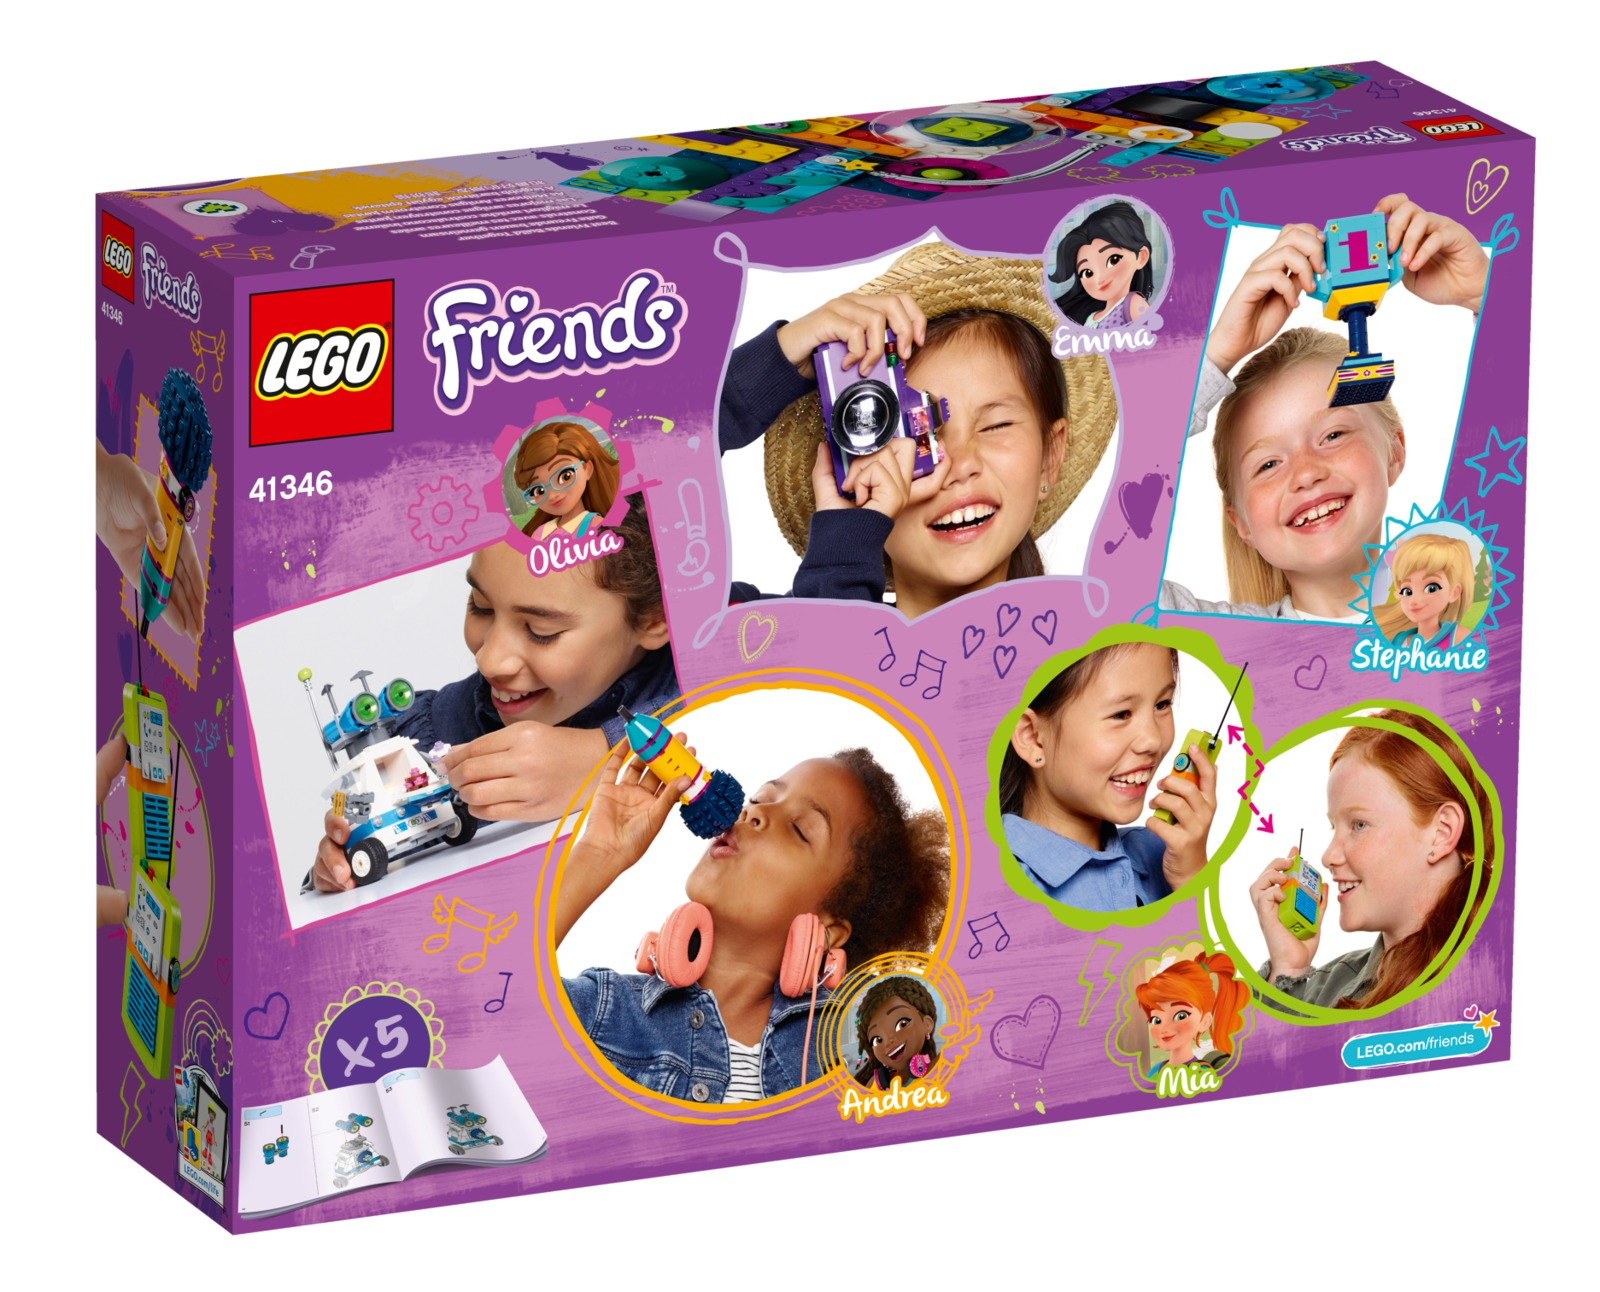 LEGO Friends: Friendship Box (41346) image